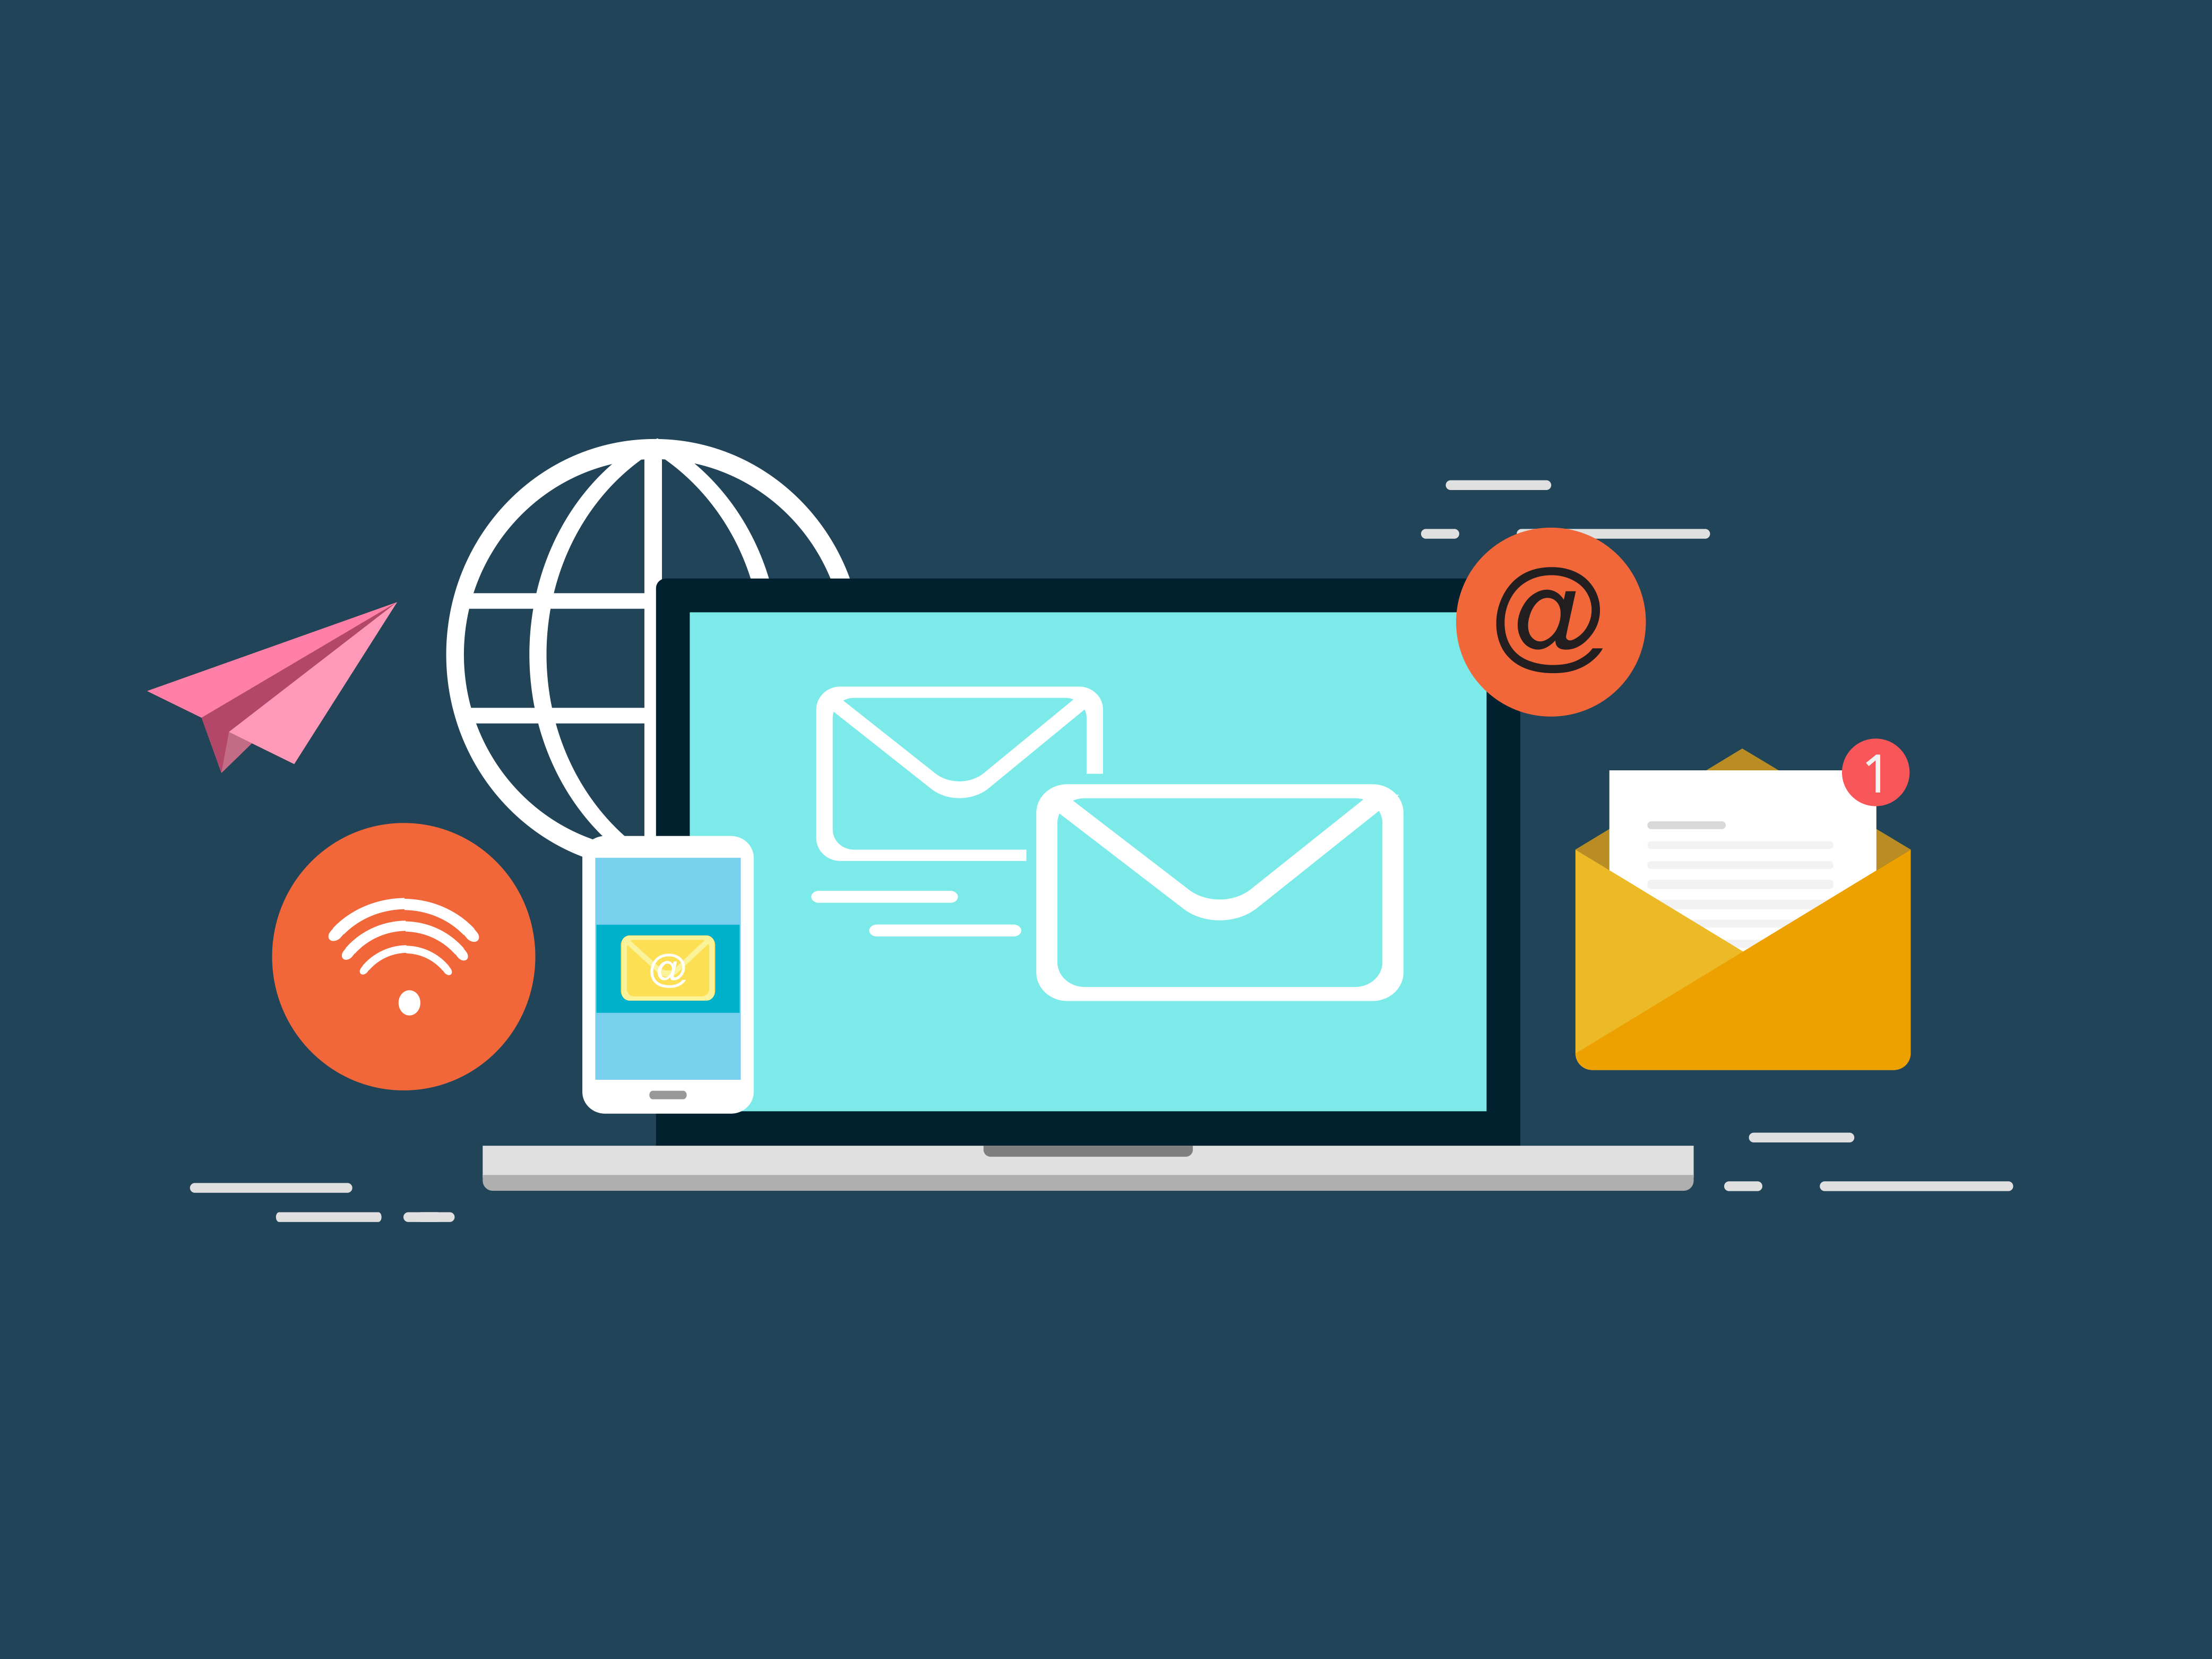 9 ways to keep your business's email etiquette polished